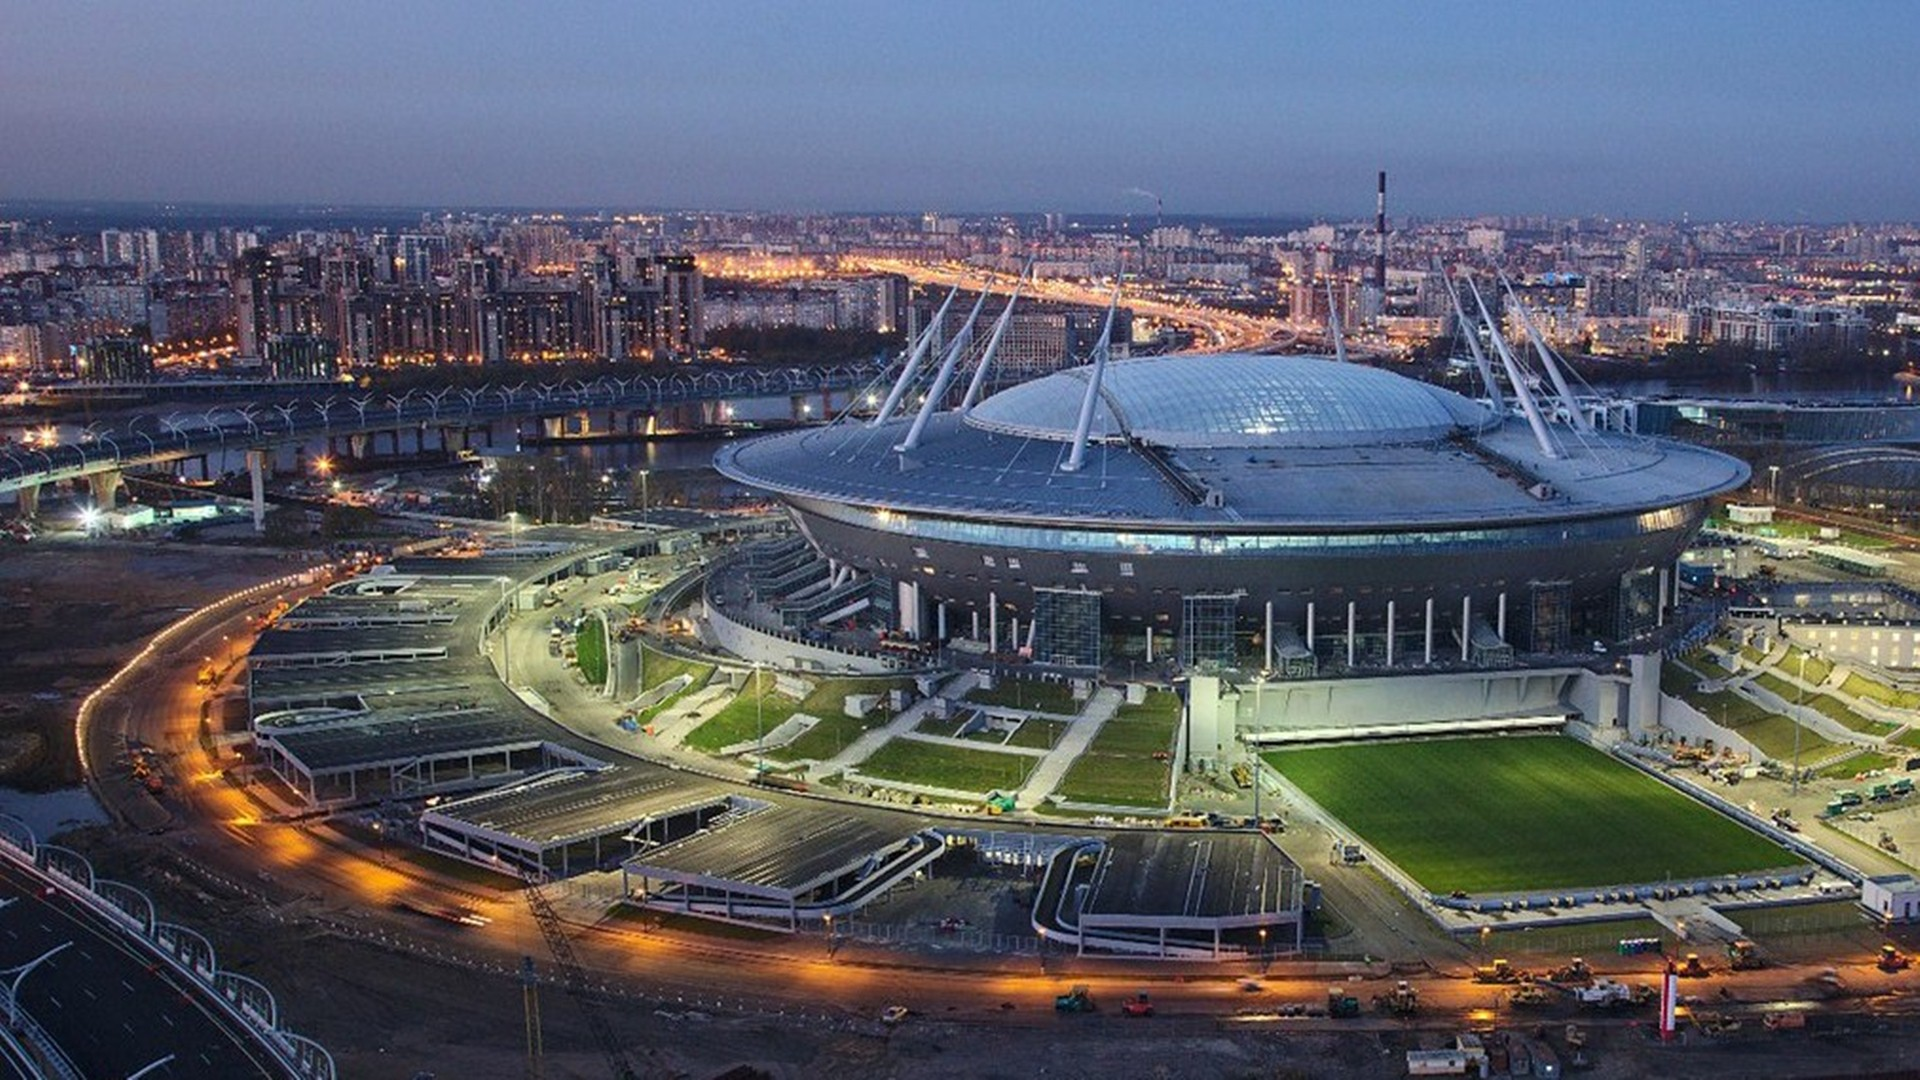 St. Petersburg Arena Aims to Fill Half of Its Capacity at Euro 2020 Games - Caspian News